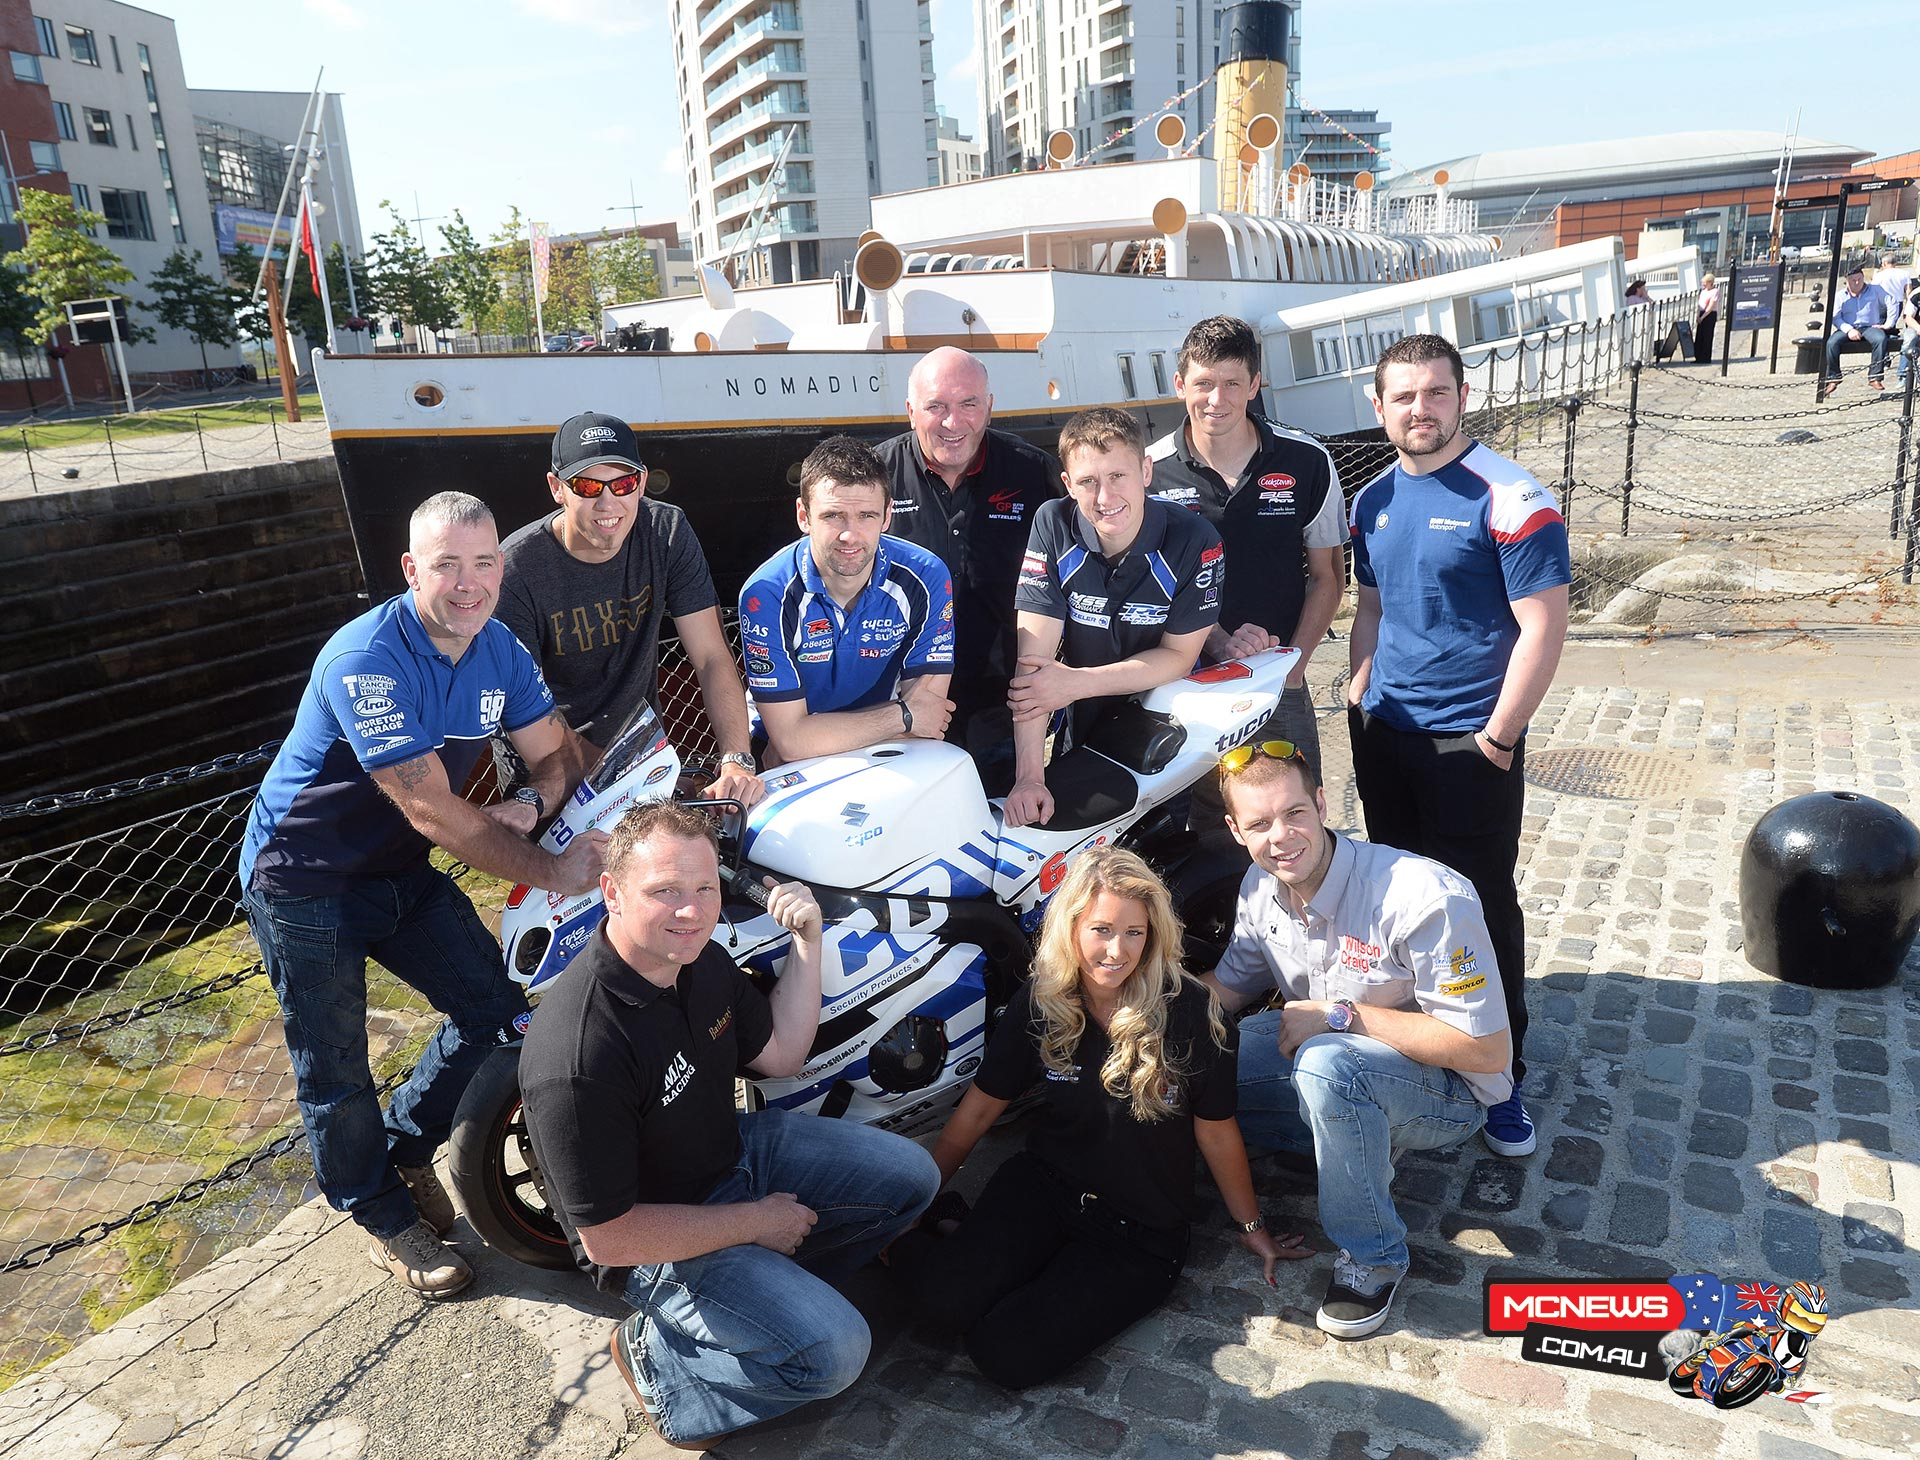 Some of the biggest names and brightest talents in real road racing have come together on board the SS Nomadic, Belfast to launch the 2014 Metzeler Ulster Grand Prix and give fans an exciting preview of this year's event. Pictured at the event are top road racers Paul Owen, Peter Hickman, William Dunlop, Dean Harrison, Dan Kneen, Michael Dunlop, Stephen Thompson and Jamie Hamilton with Clerk of the Course Noel Johnston and UGP grid girl Sorrel Flack.